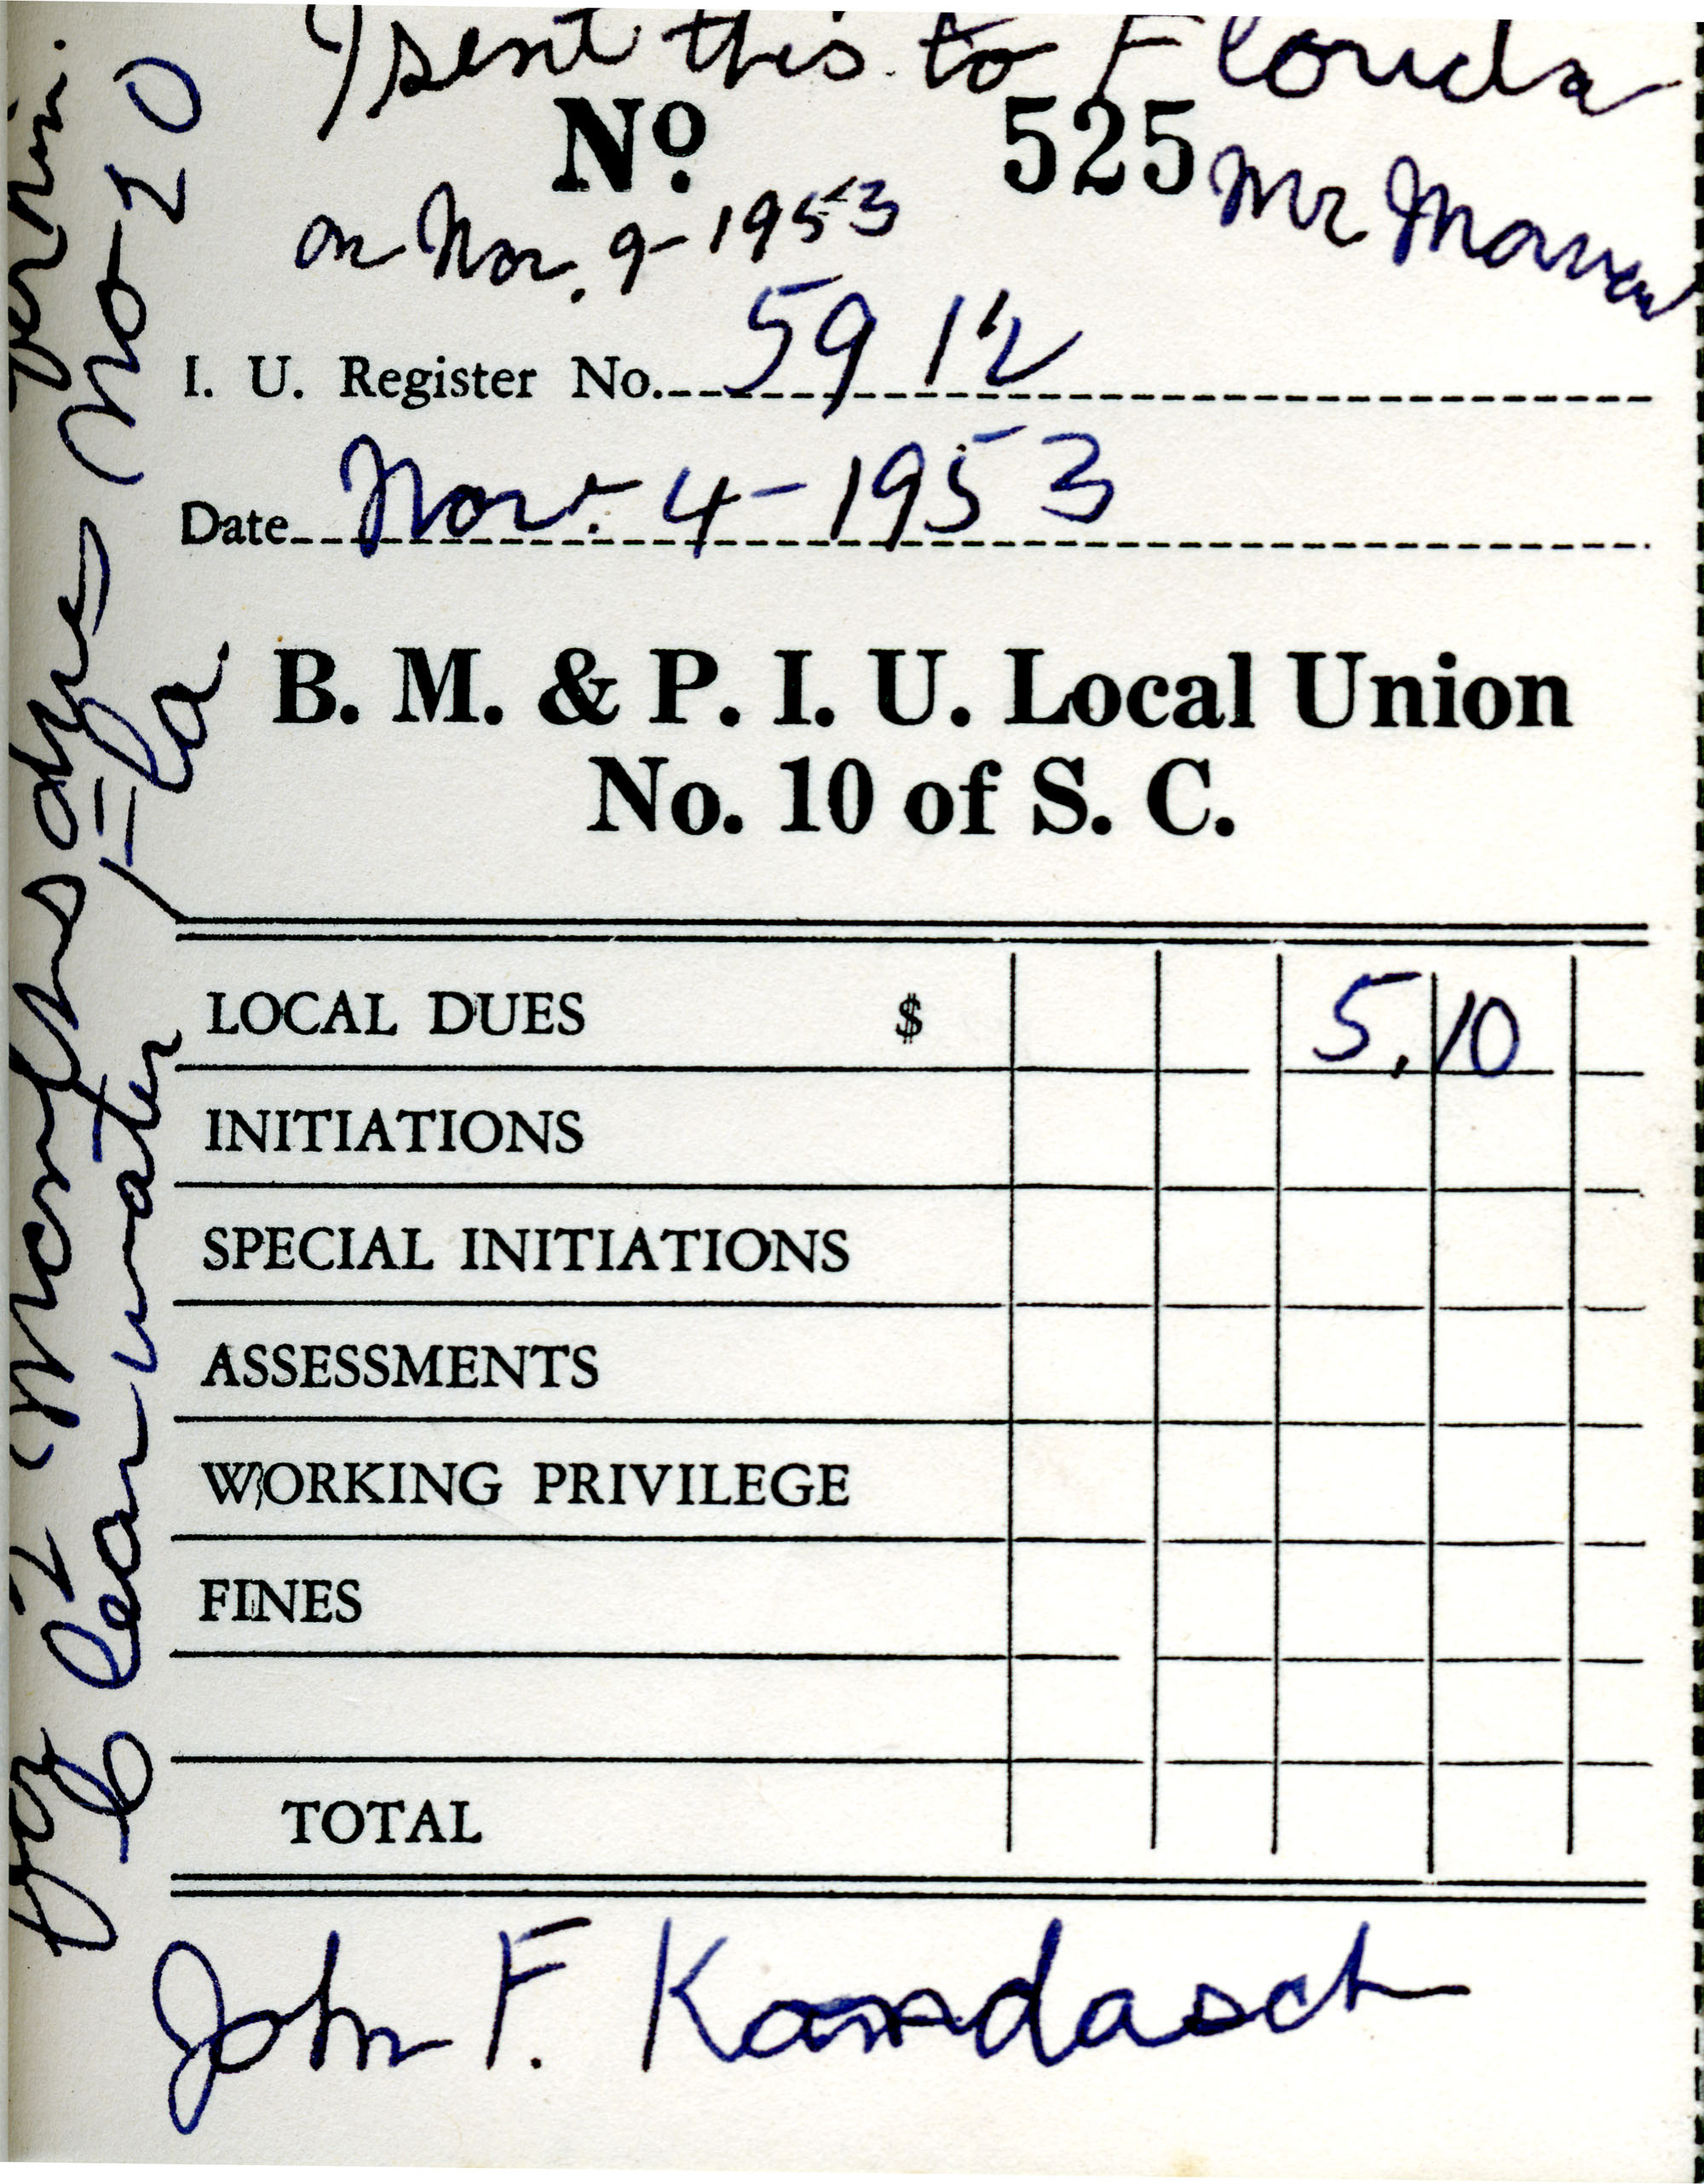 Receipt Book 2, Page 24